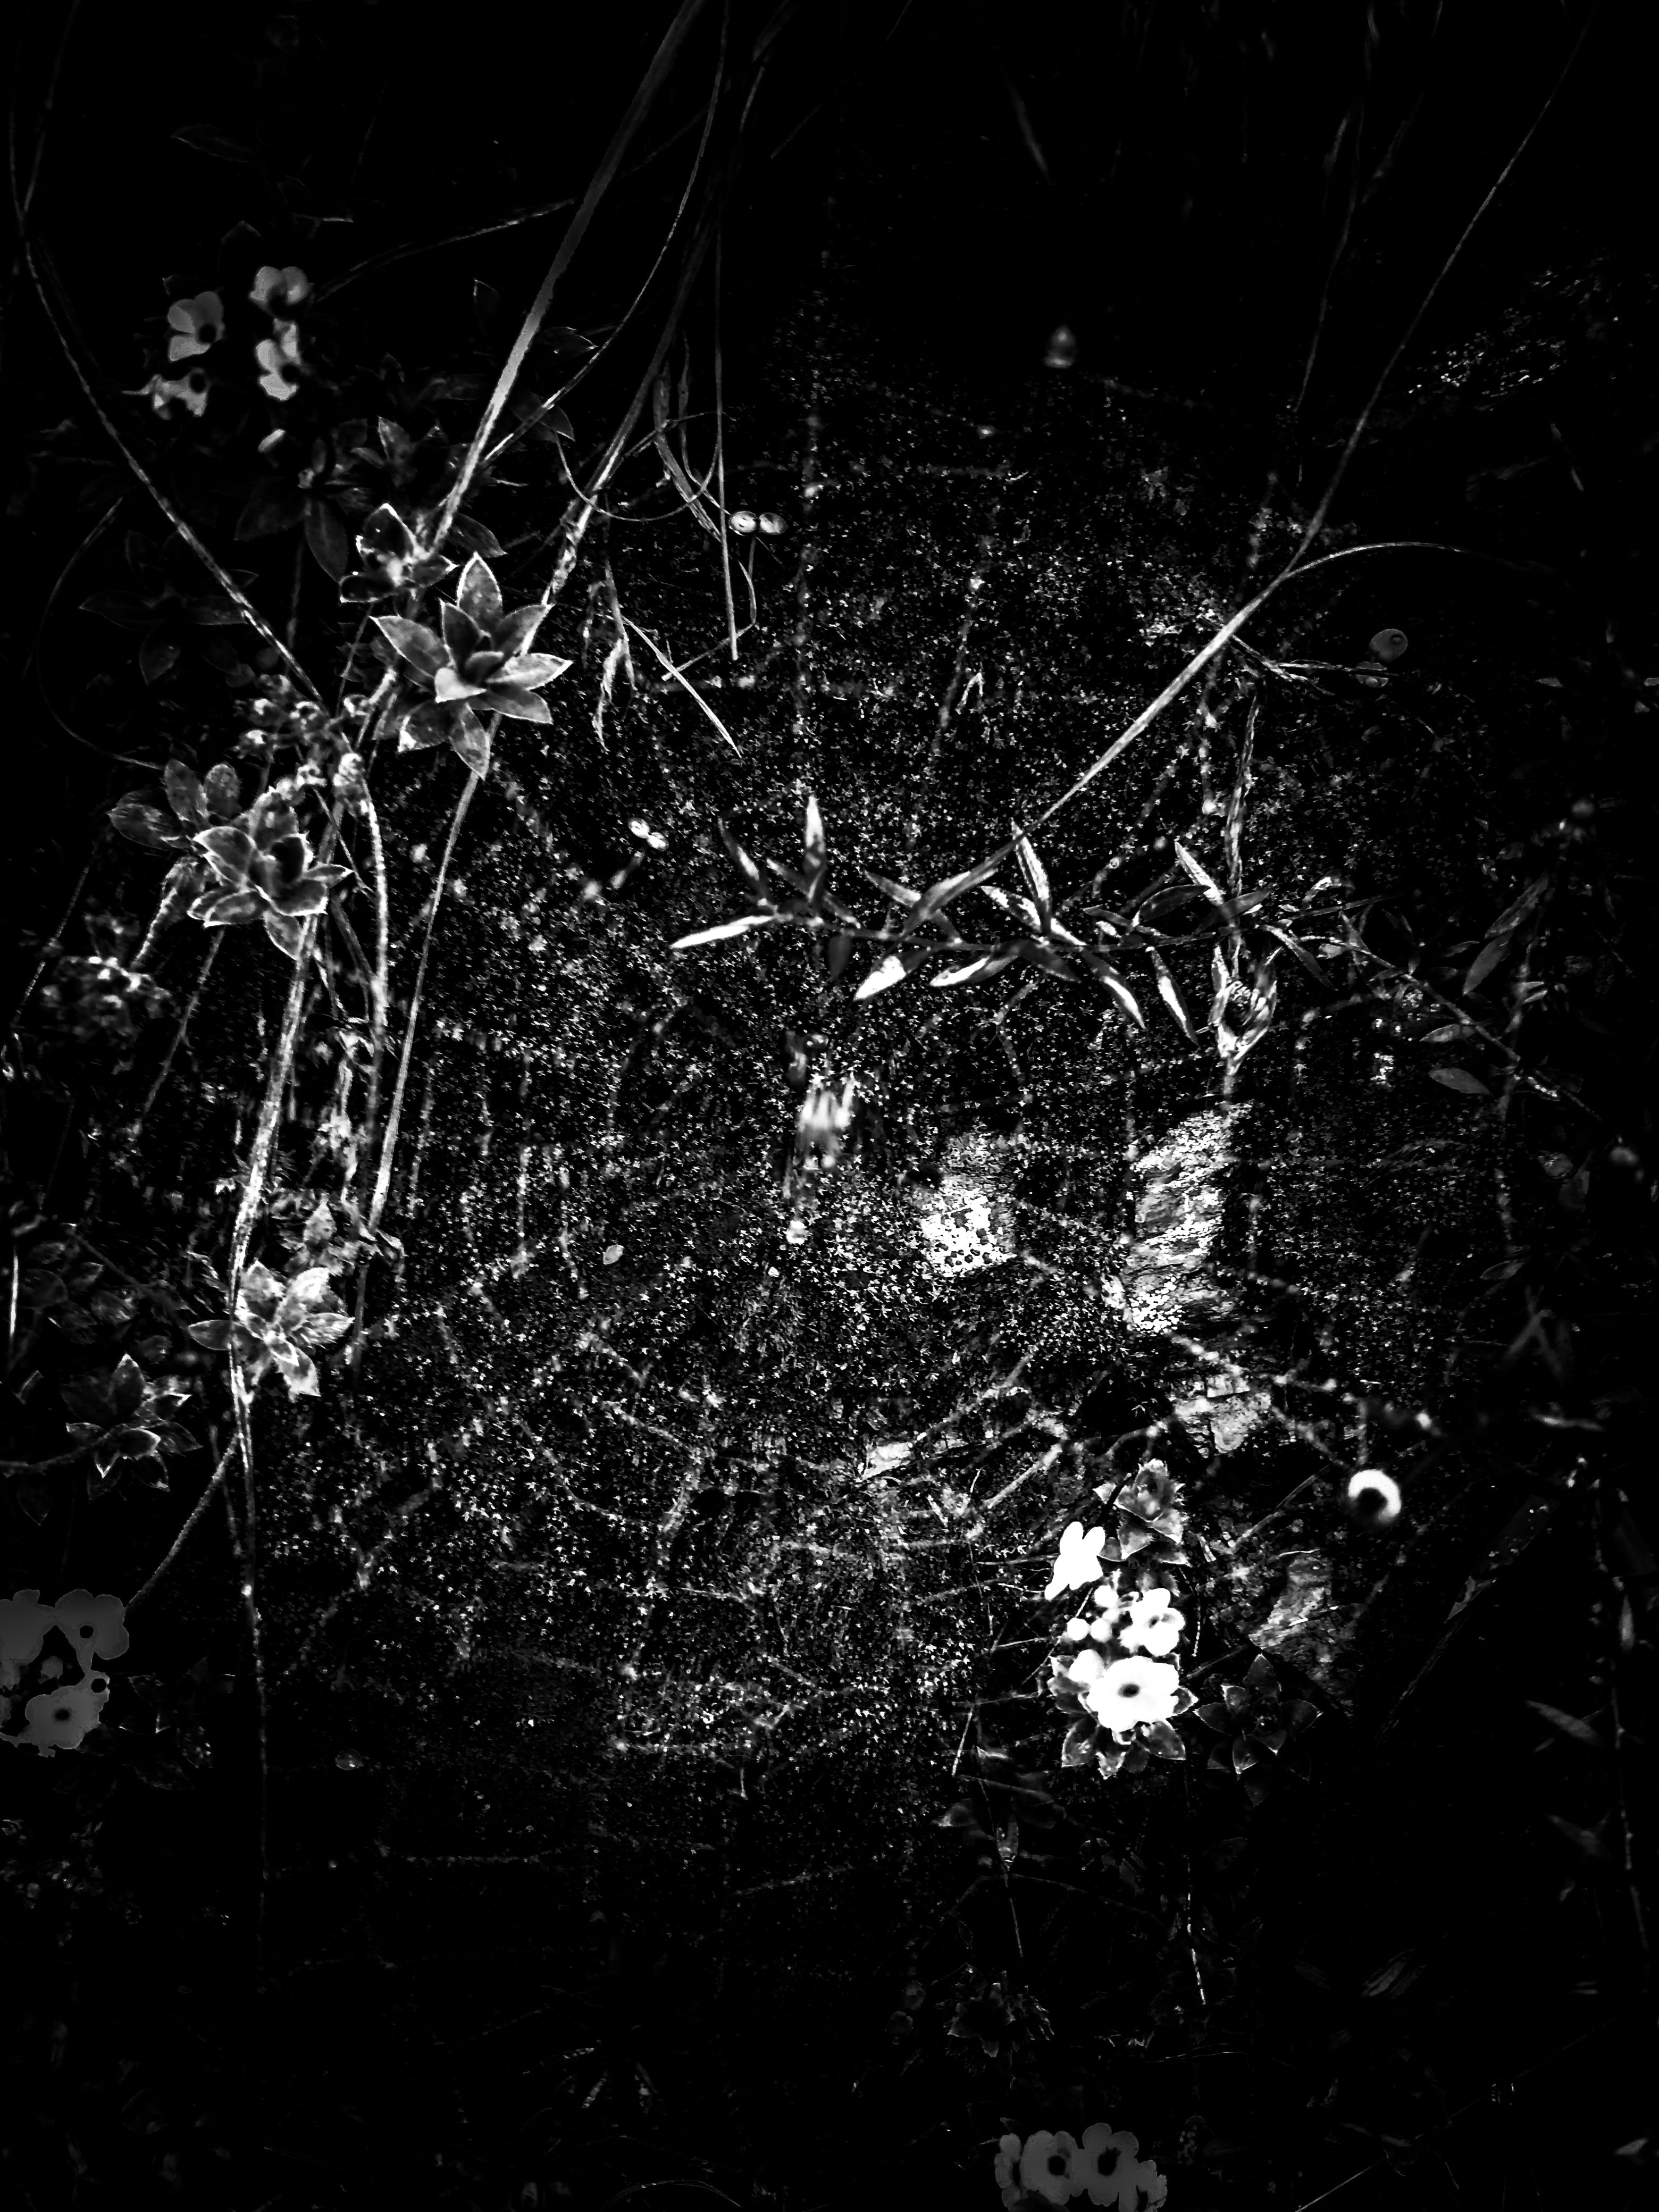 Free stock photo of bnw, spider web